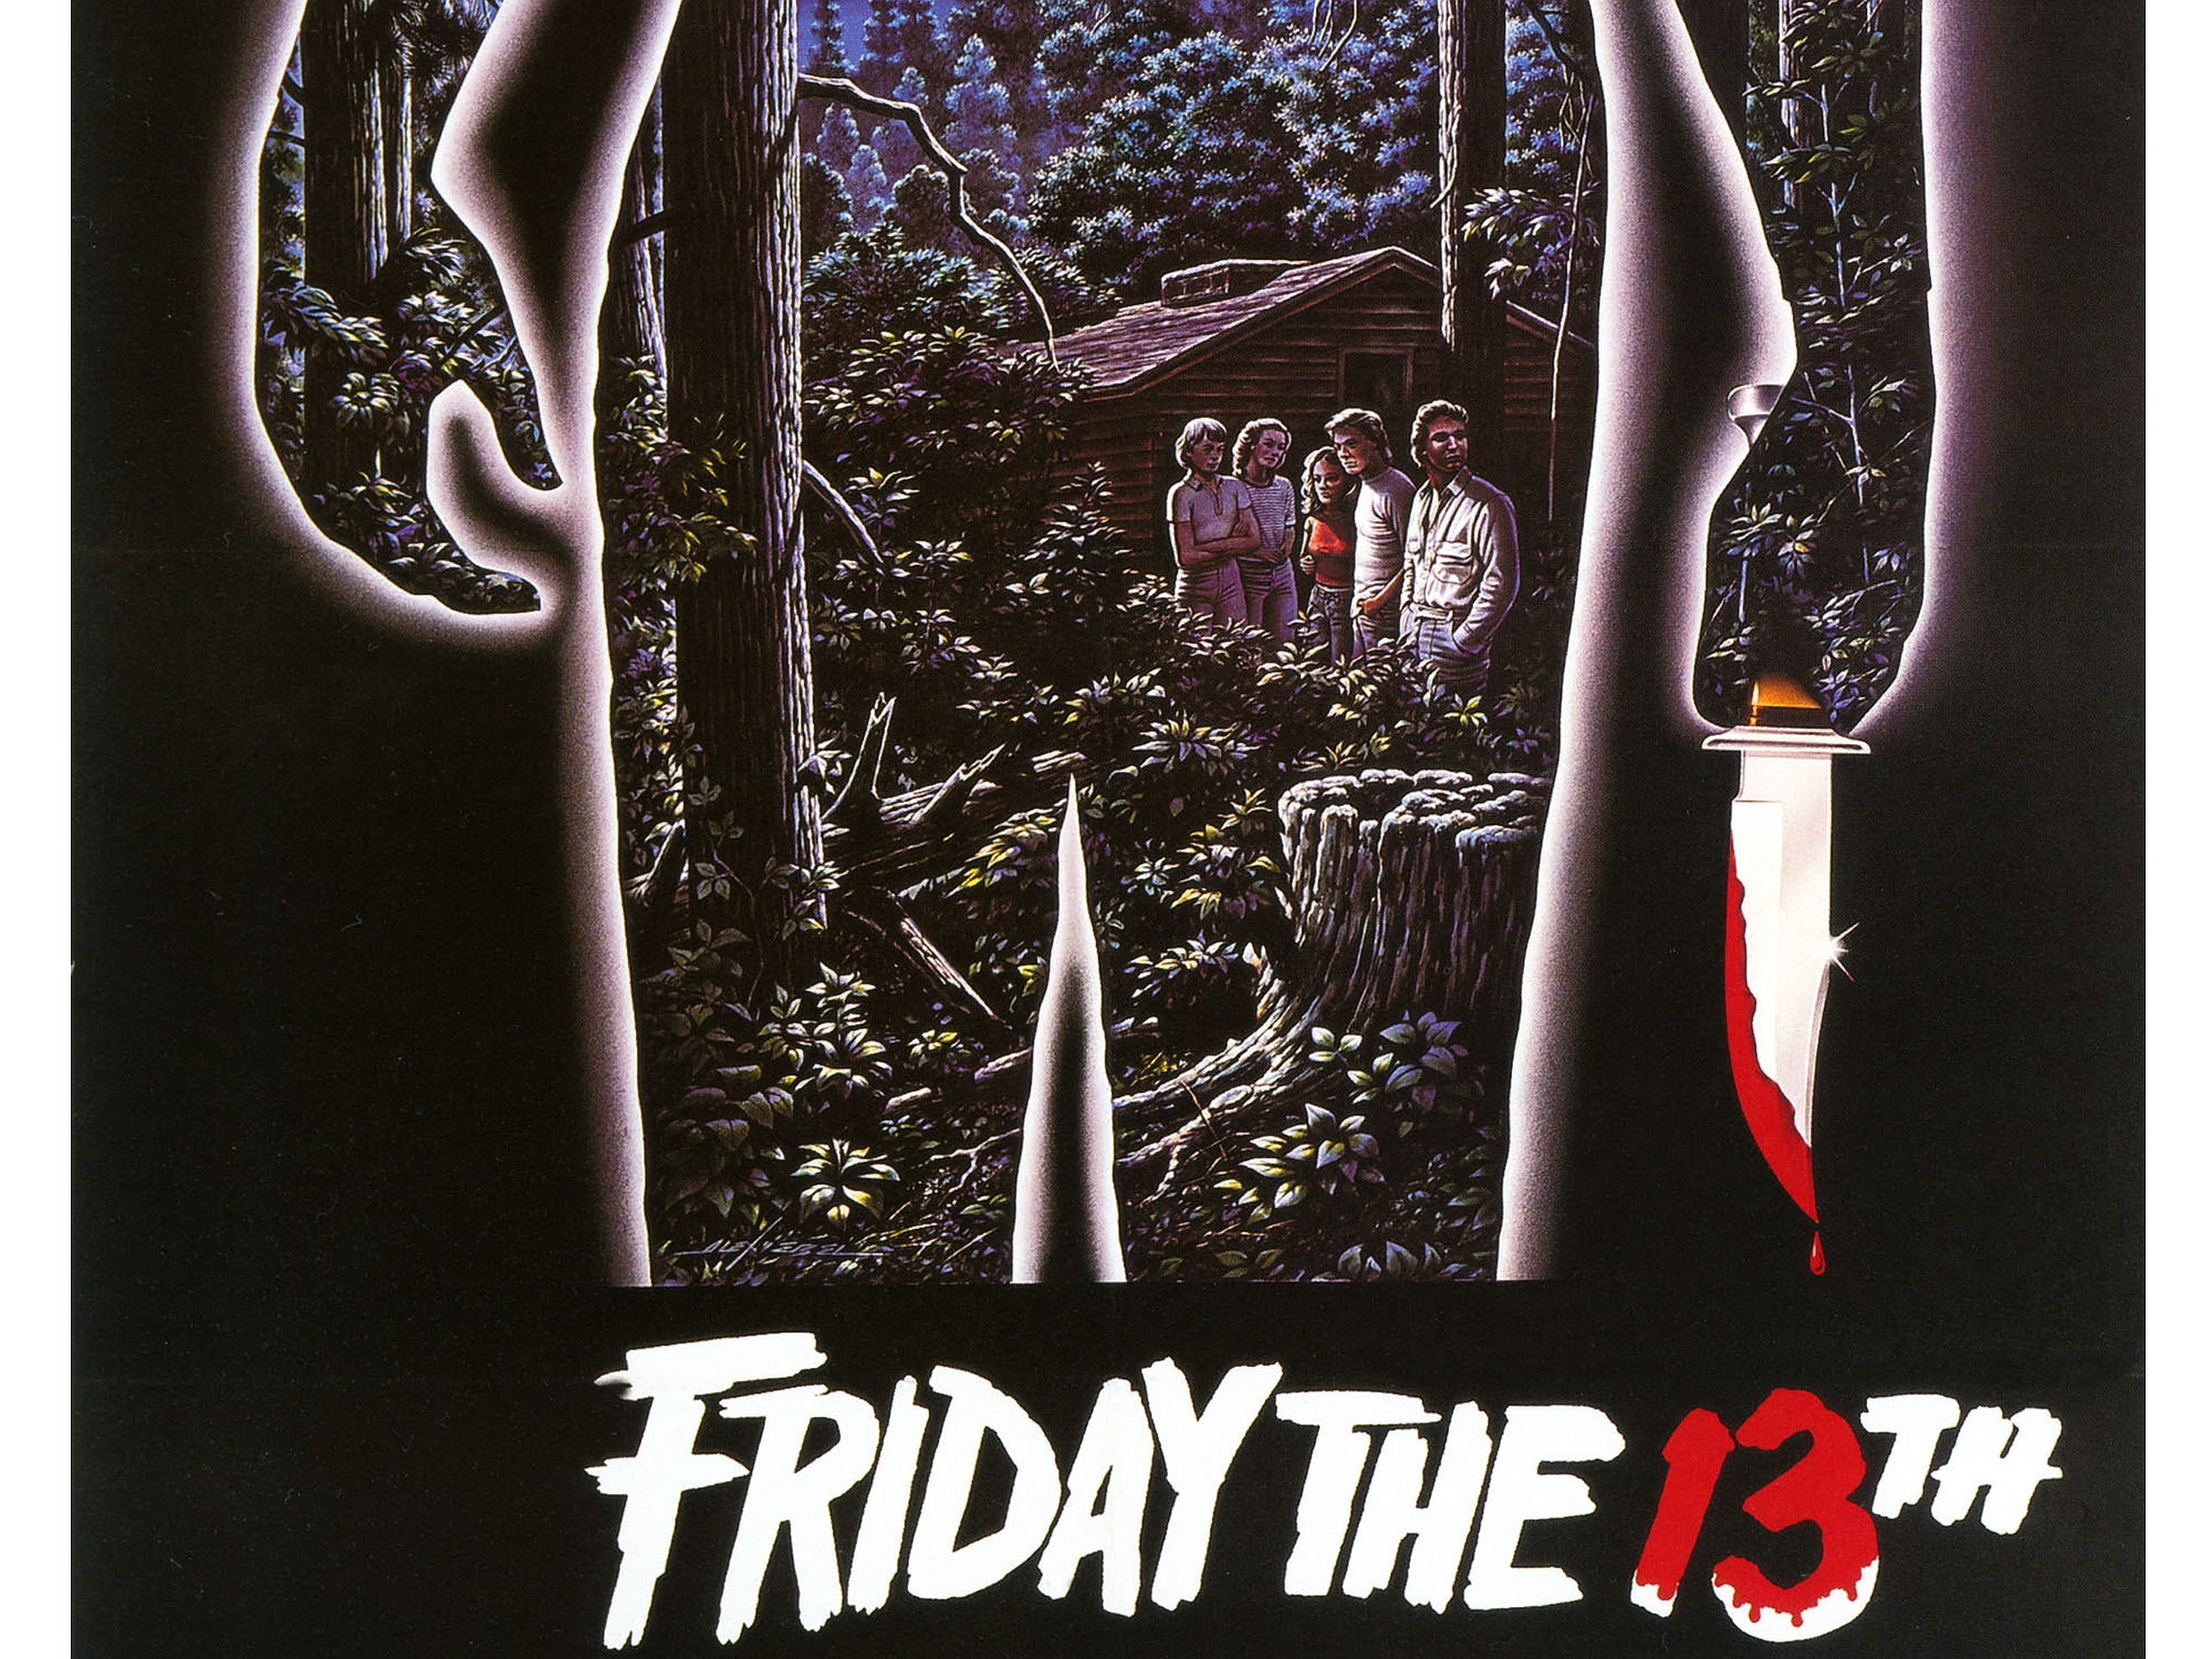 Friday The 13th Wallpapers Friday The 13th Wallpaper 36487601